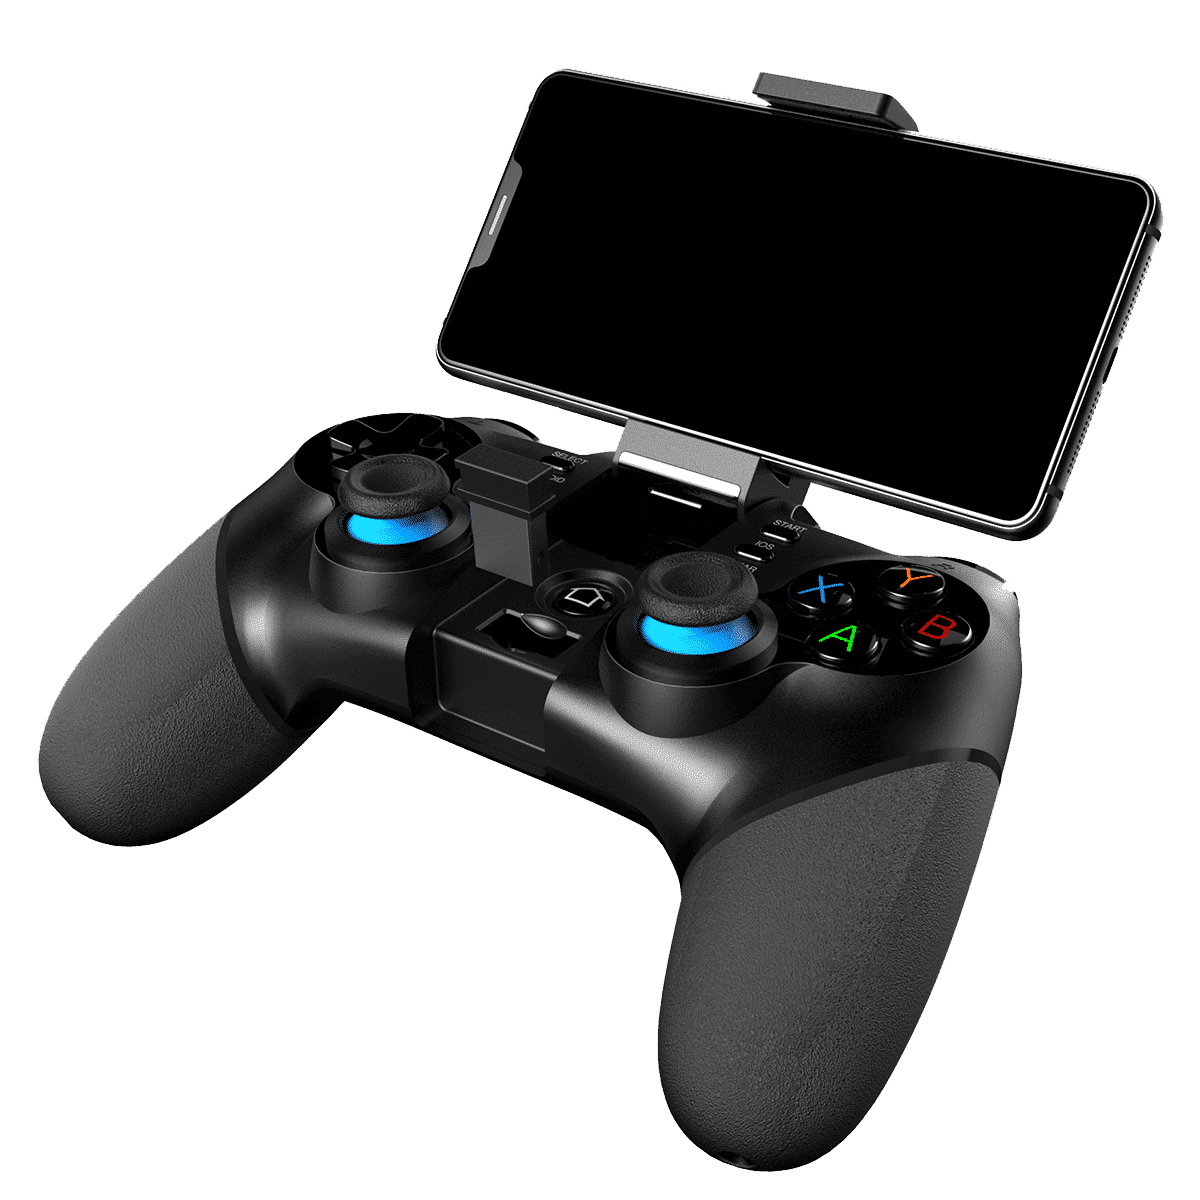 iPega PG-9156 Bluetooth and 2.4Ghz wireless Gamepad for Android, Windows and iOS - With Phone in Holder